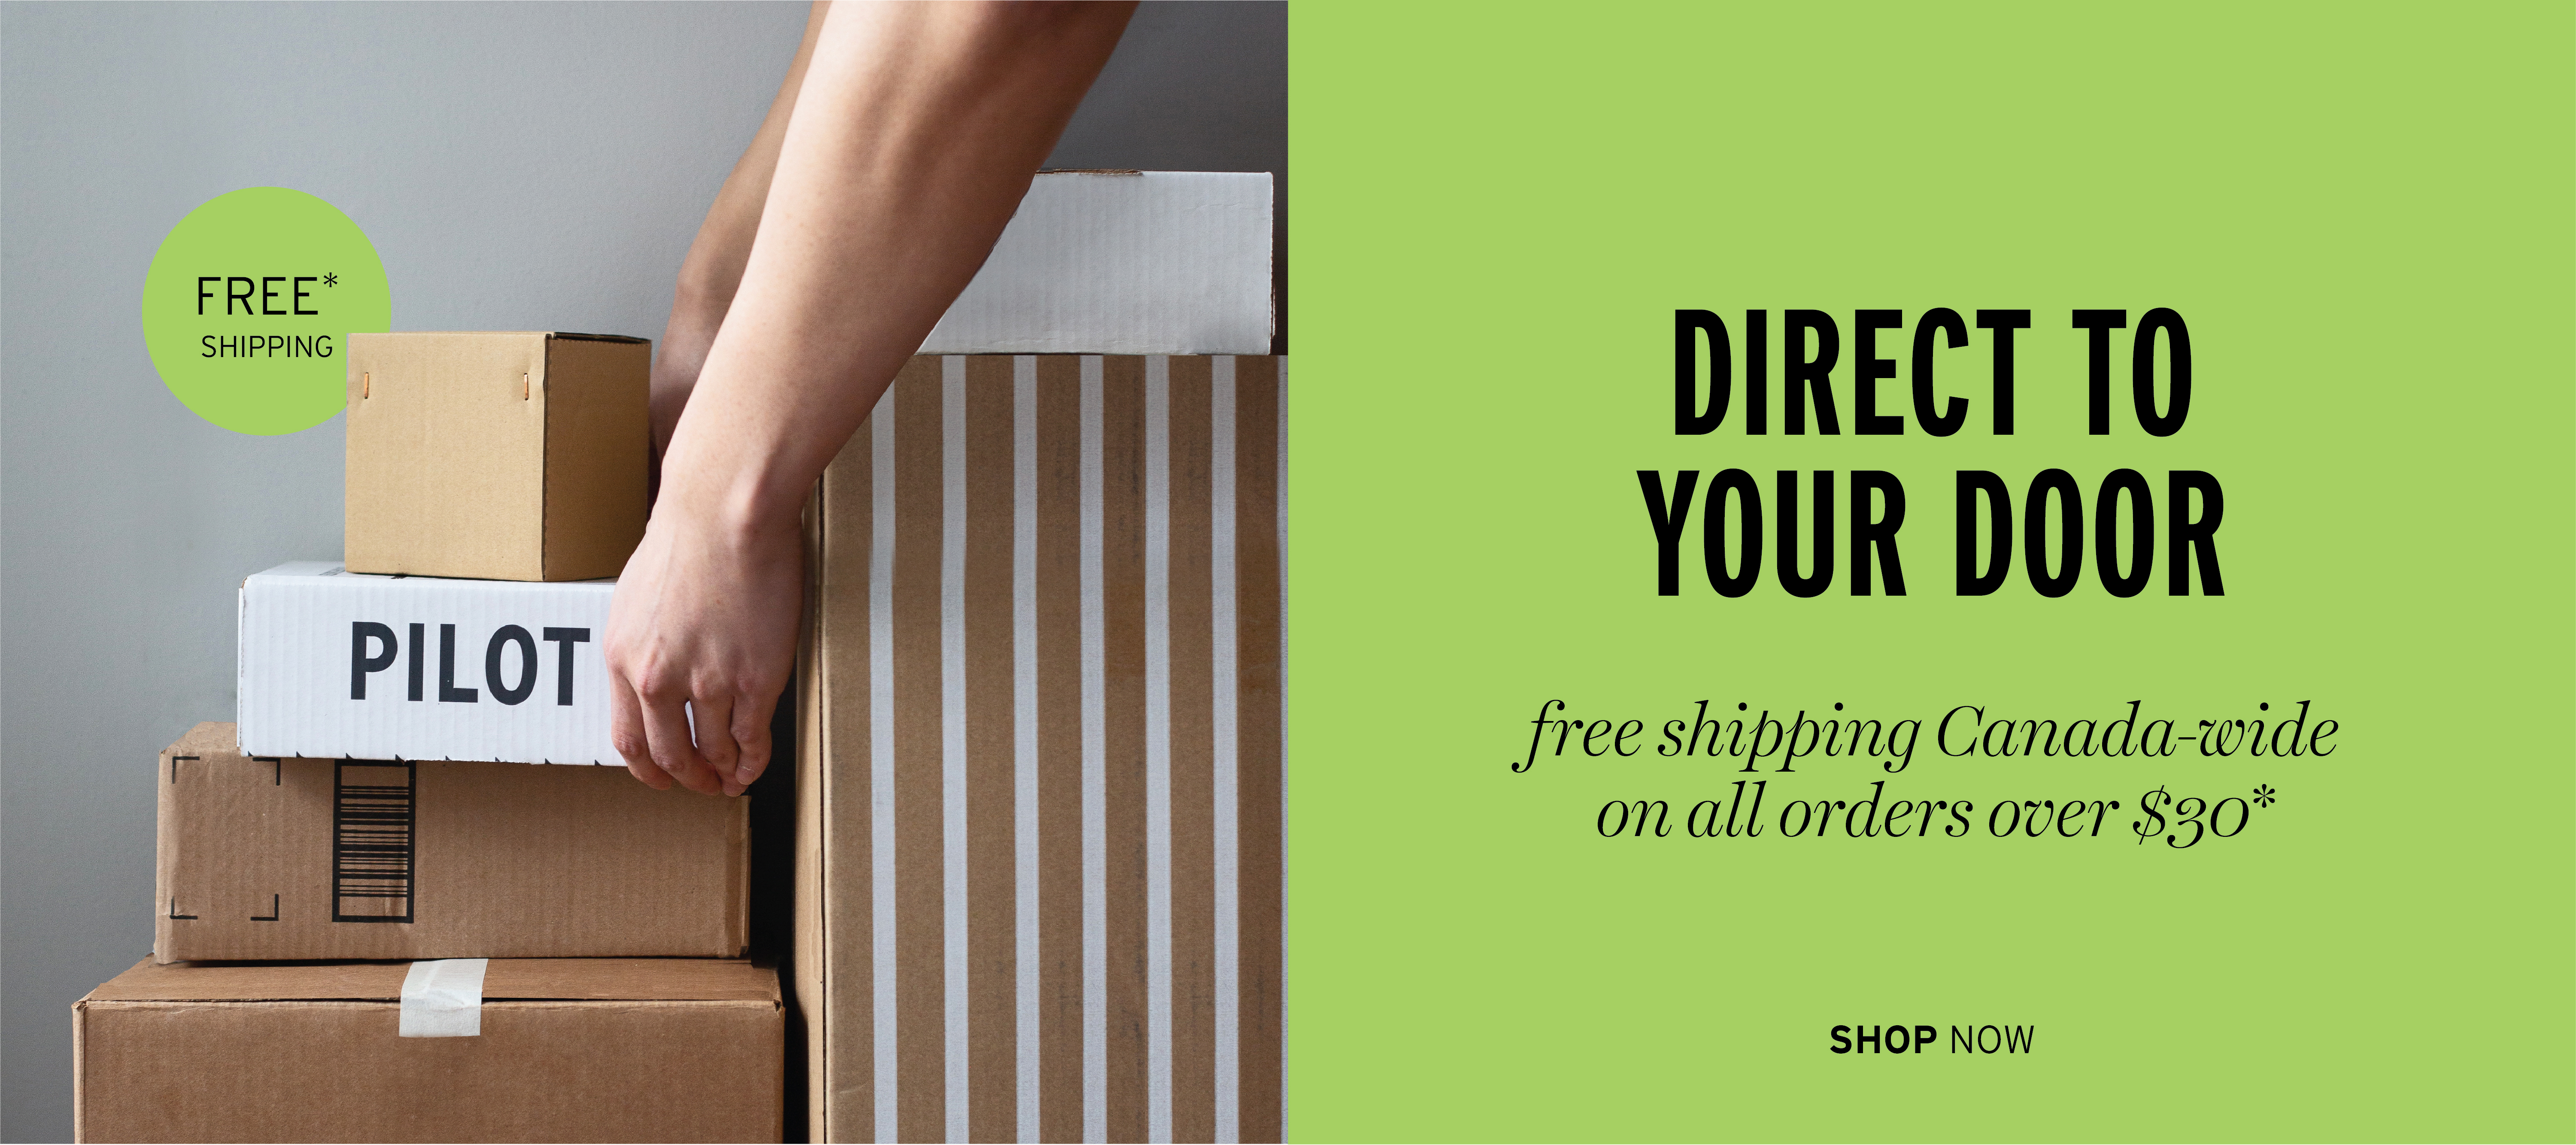 Free shipping for all orders over $30 across Canada